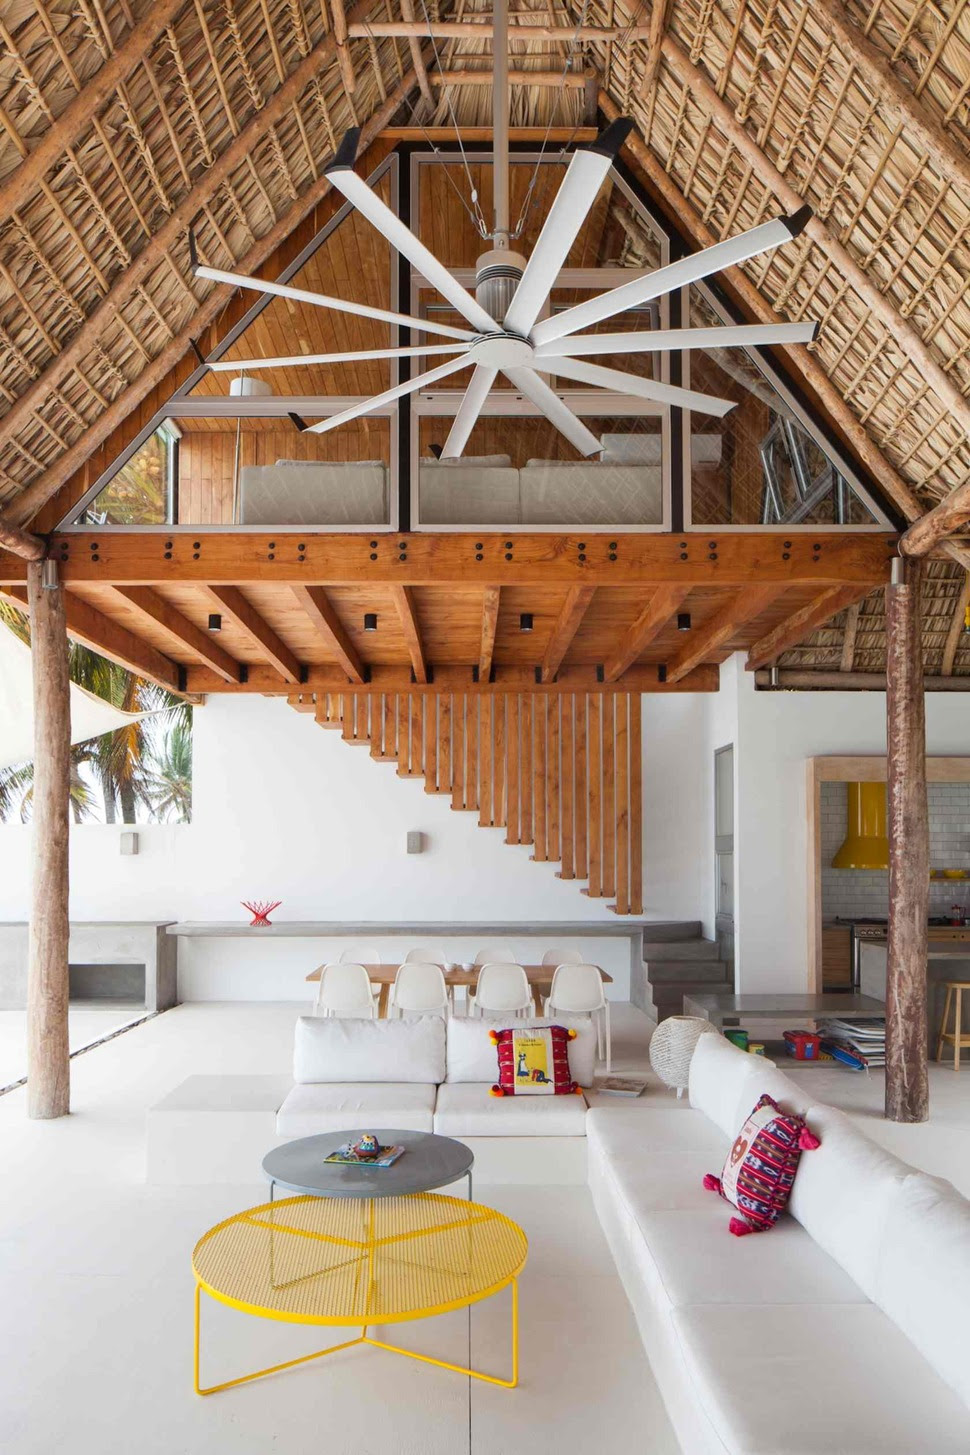 Colorful Tropical Open Home With RoughCut Thatched Roof  Modern House Designs